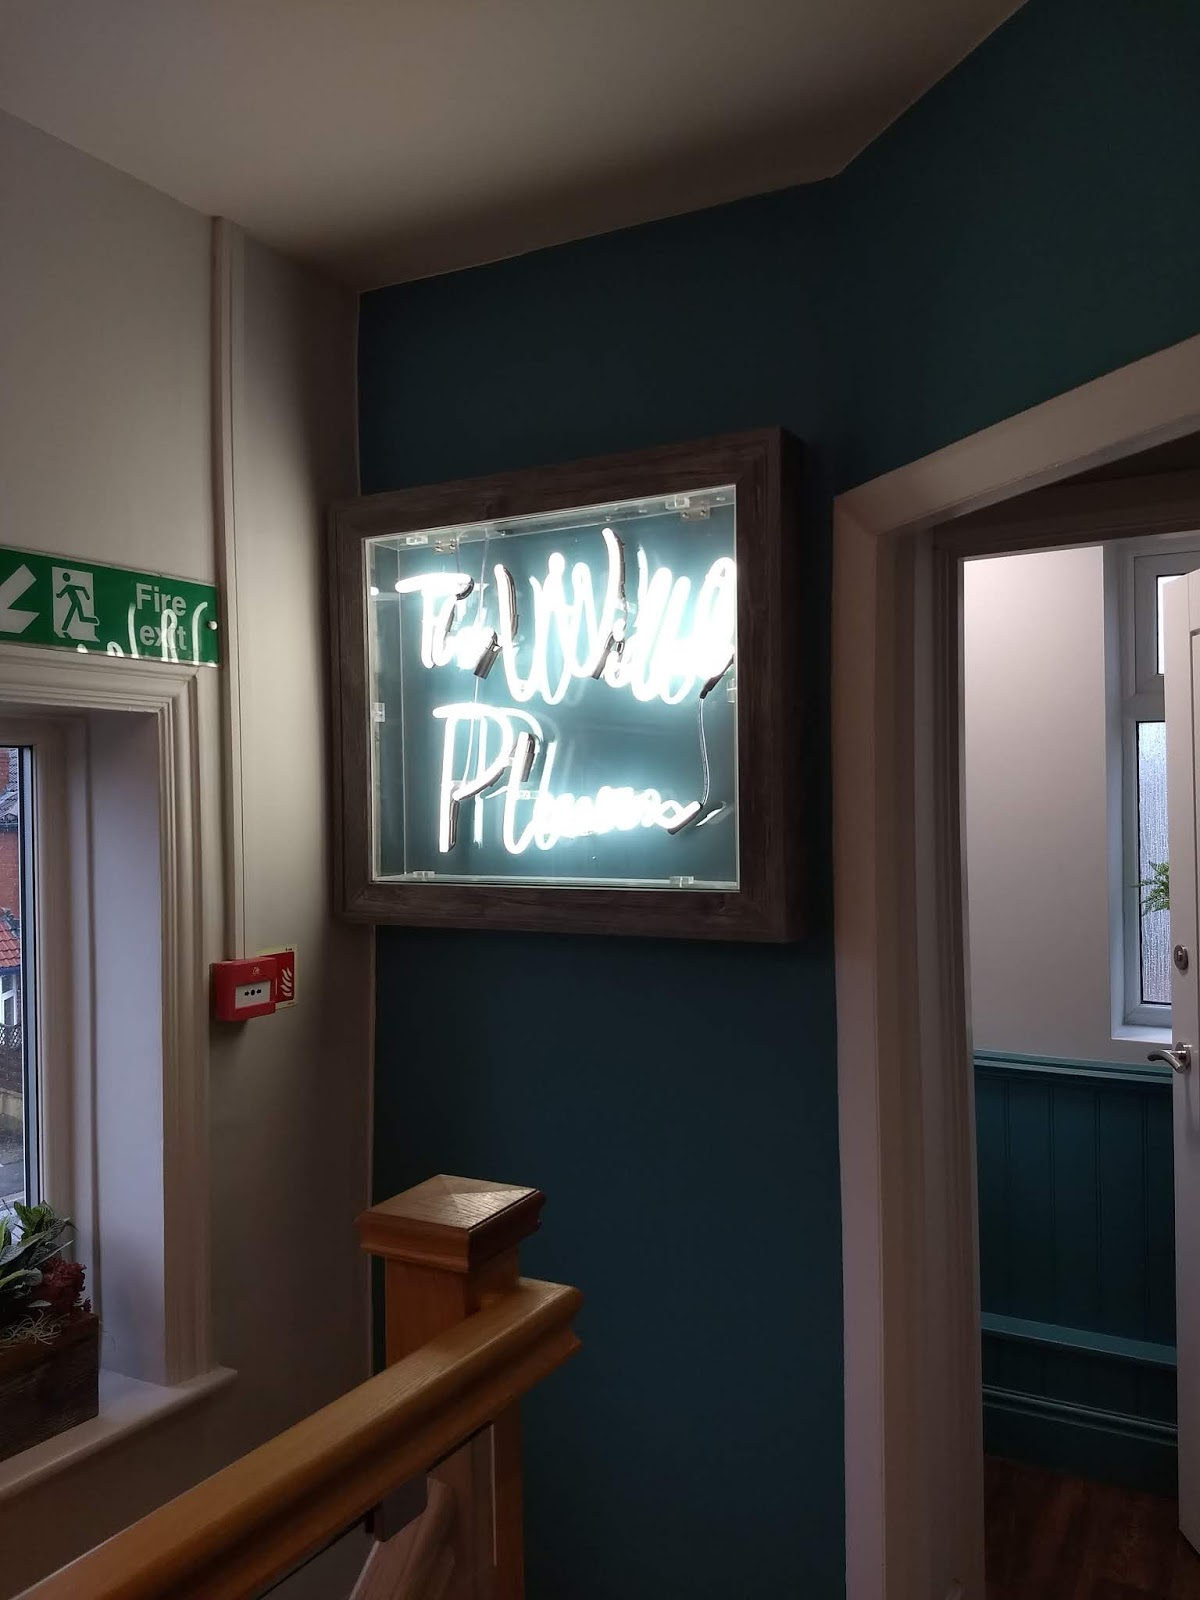 Neon light at The While Plum.